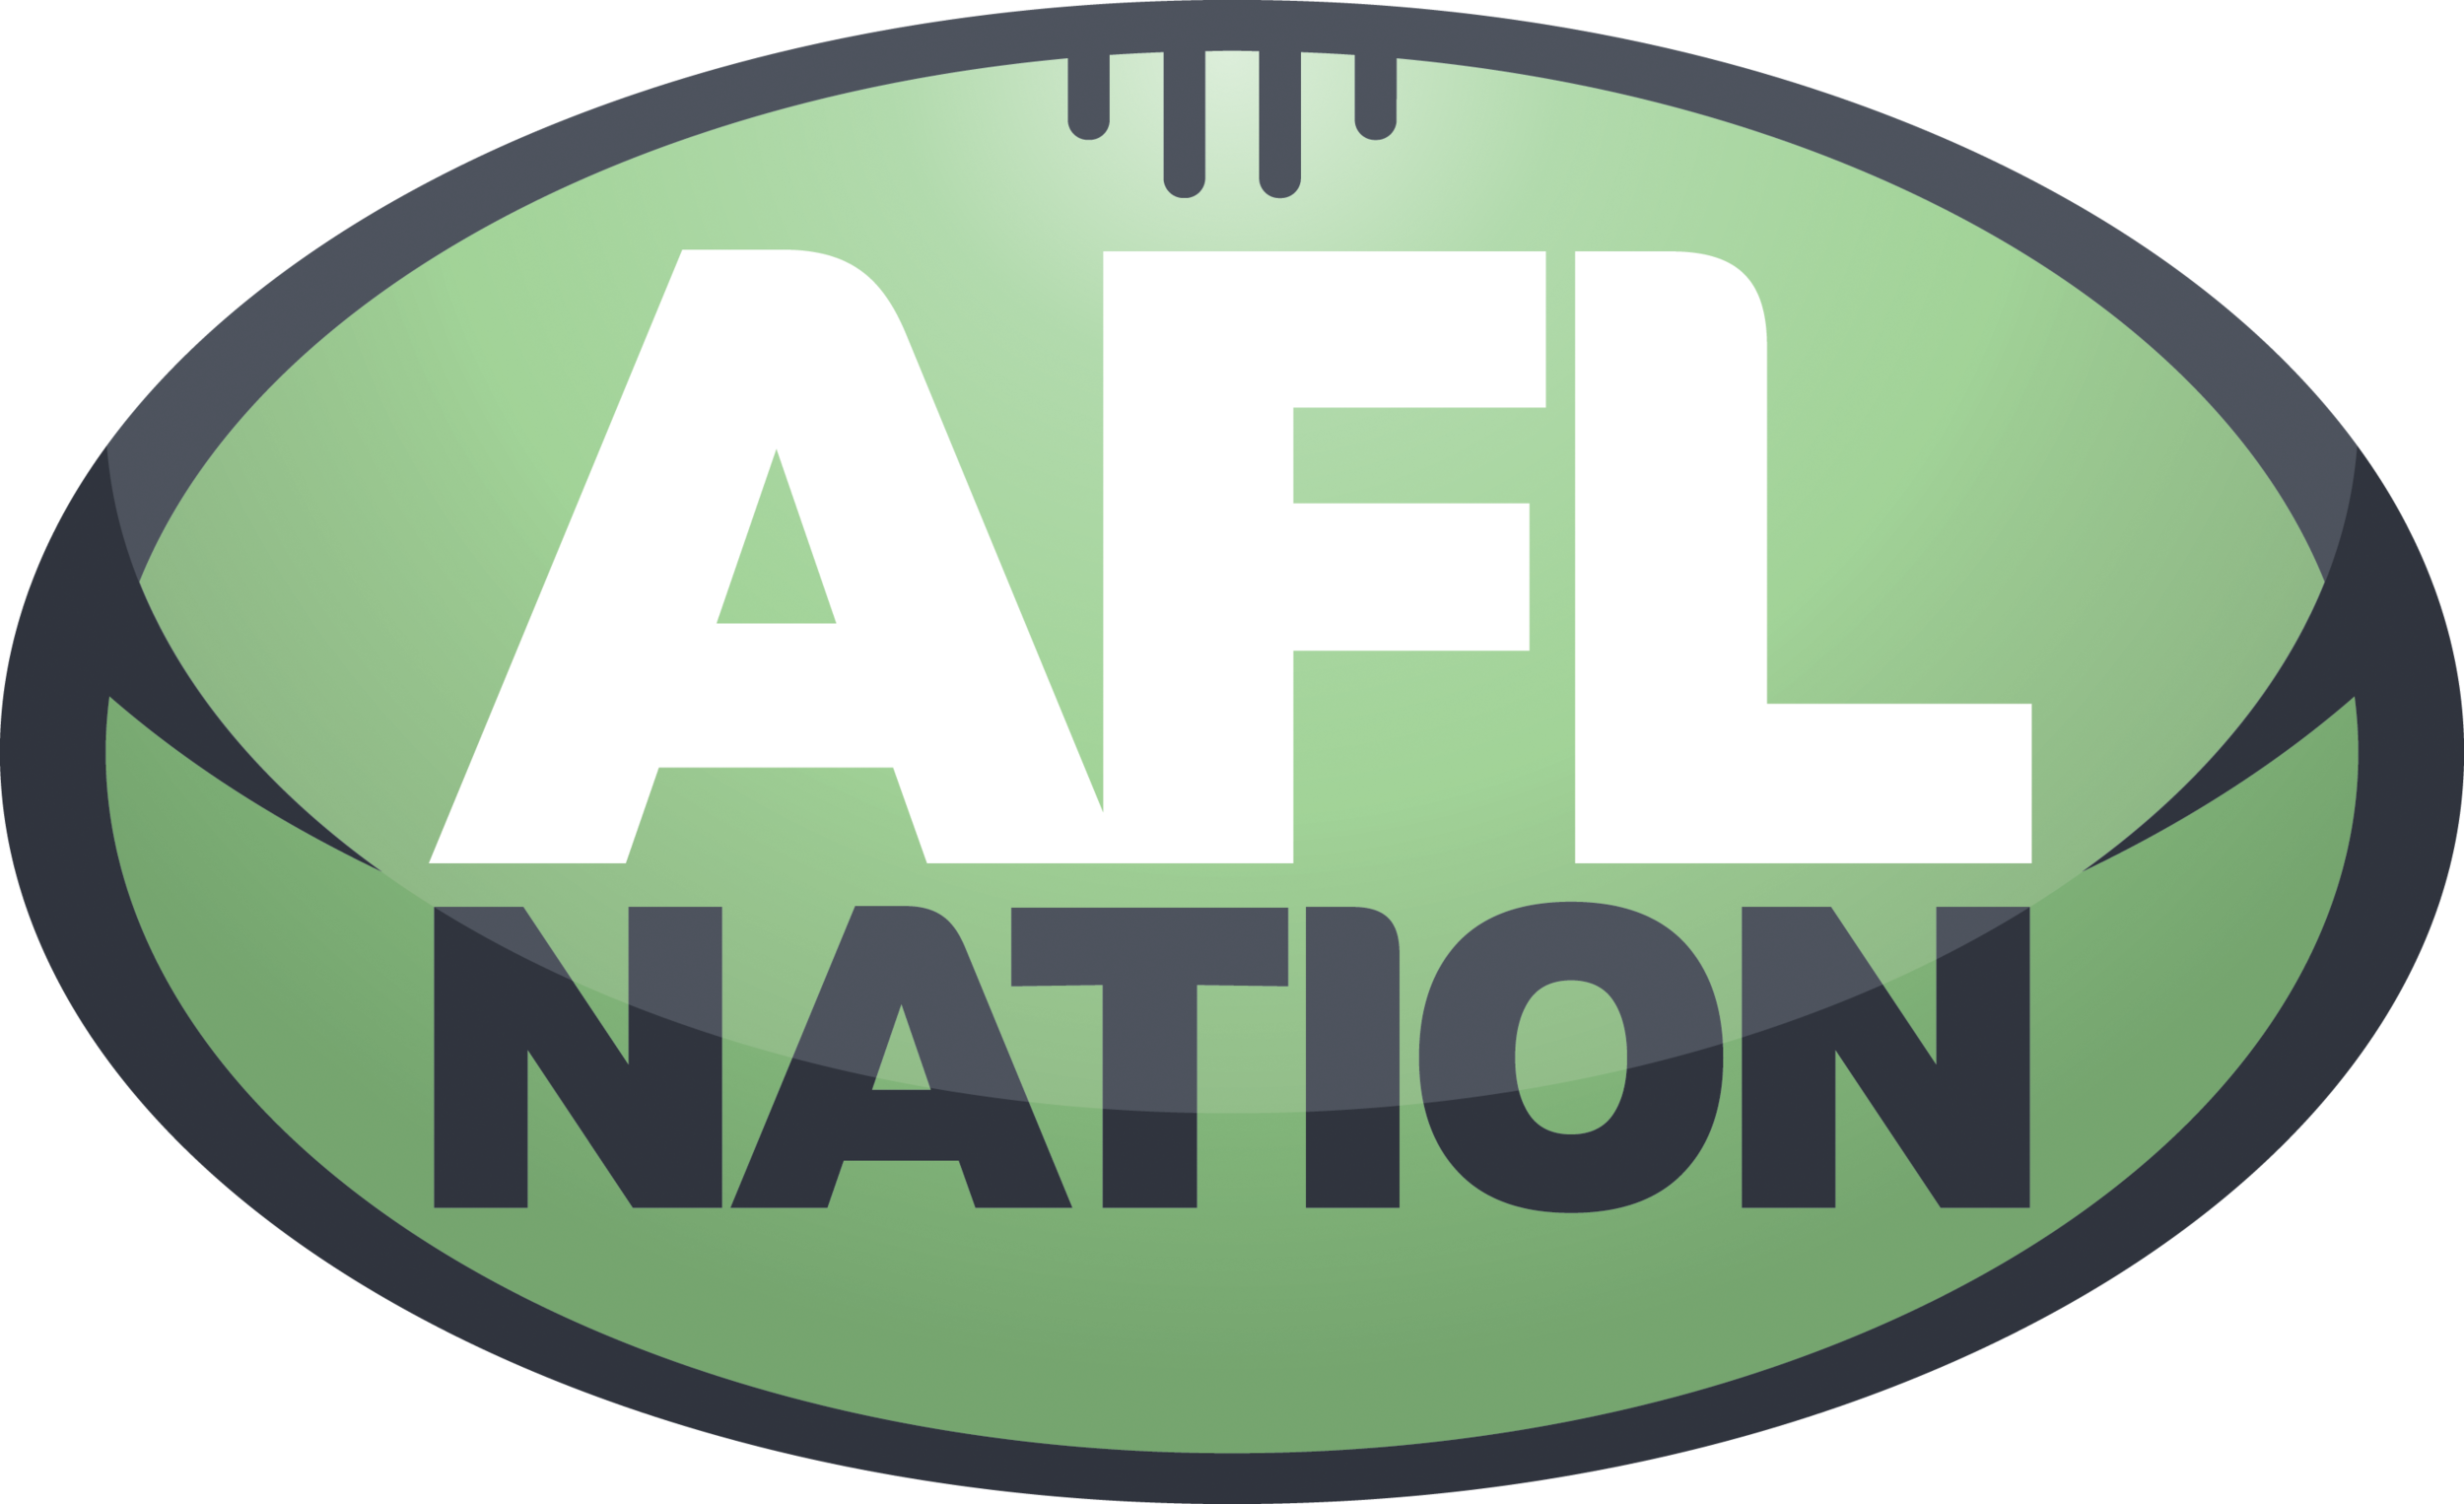 AFLNation_Hires_Transparent.png